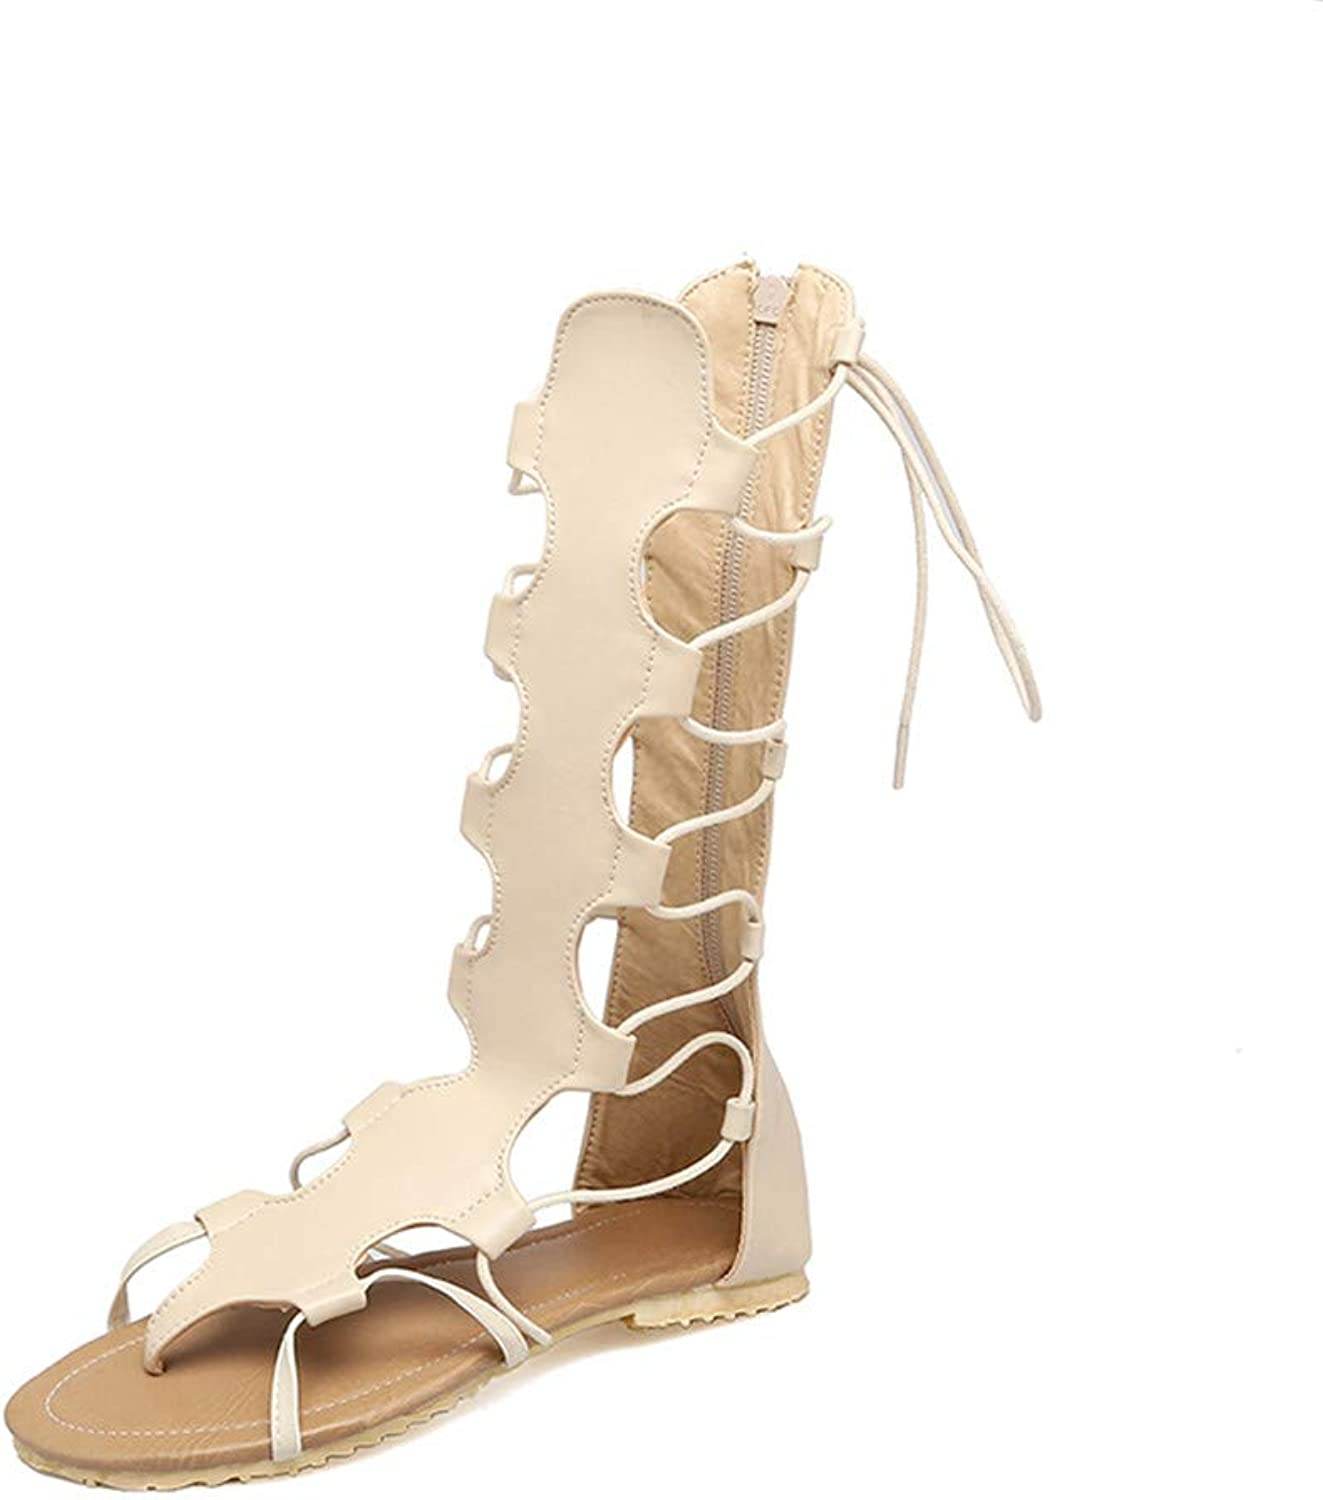 New Gladiator Sandals Women Cross-Tied shoes Fashion Cut-Outs Back Zip Knee high Summer Sandals